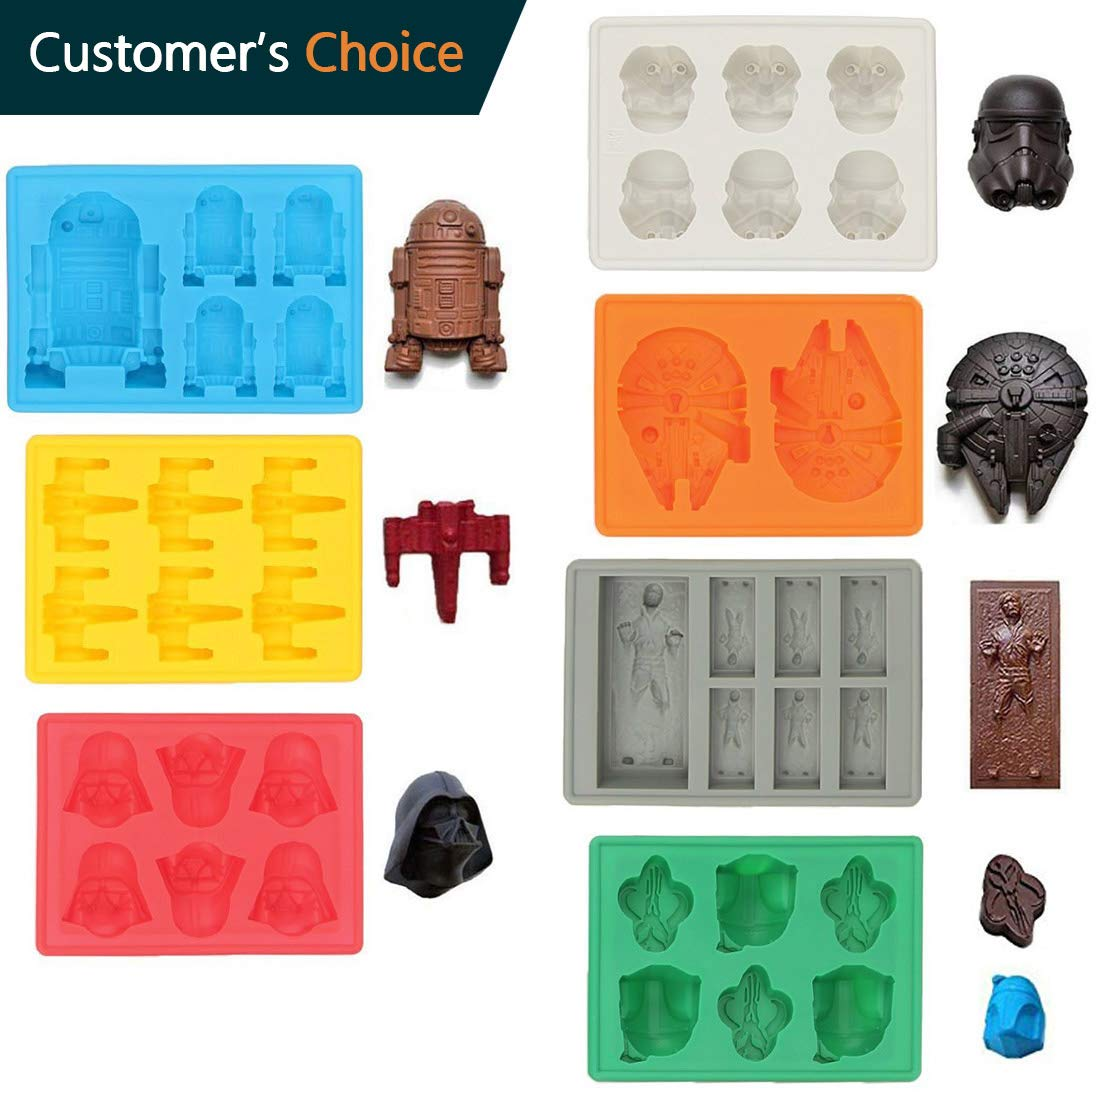 Sunerly Silicone Ice Tray Molds in Star Wars Character Shapes, Ideal for Chocolate, Ice Cubes Trays, Jelly, Sweets, Desserts, Baking Soap and Candle Making (Set of 7) by Sunerly